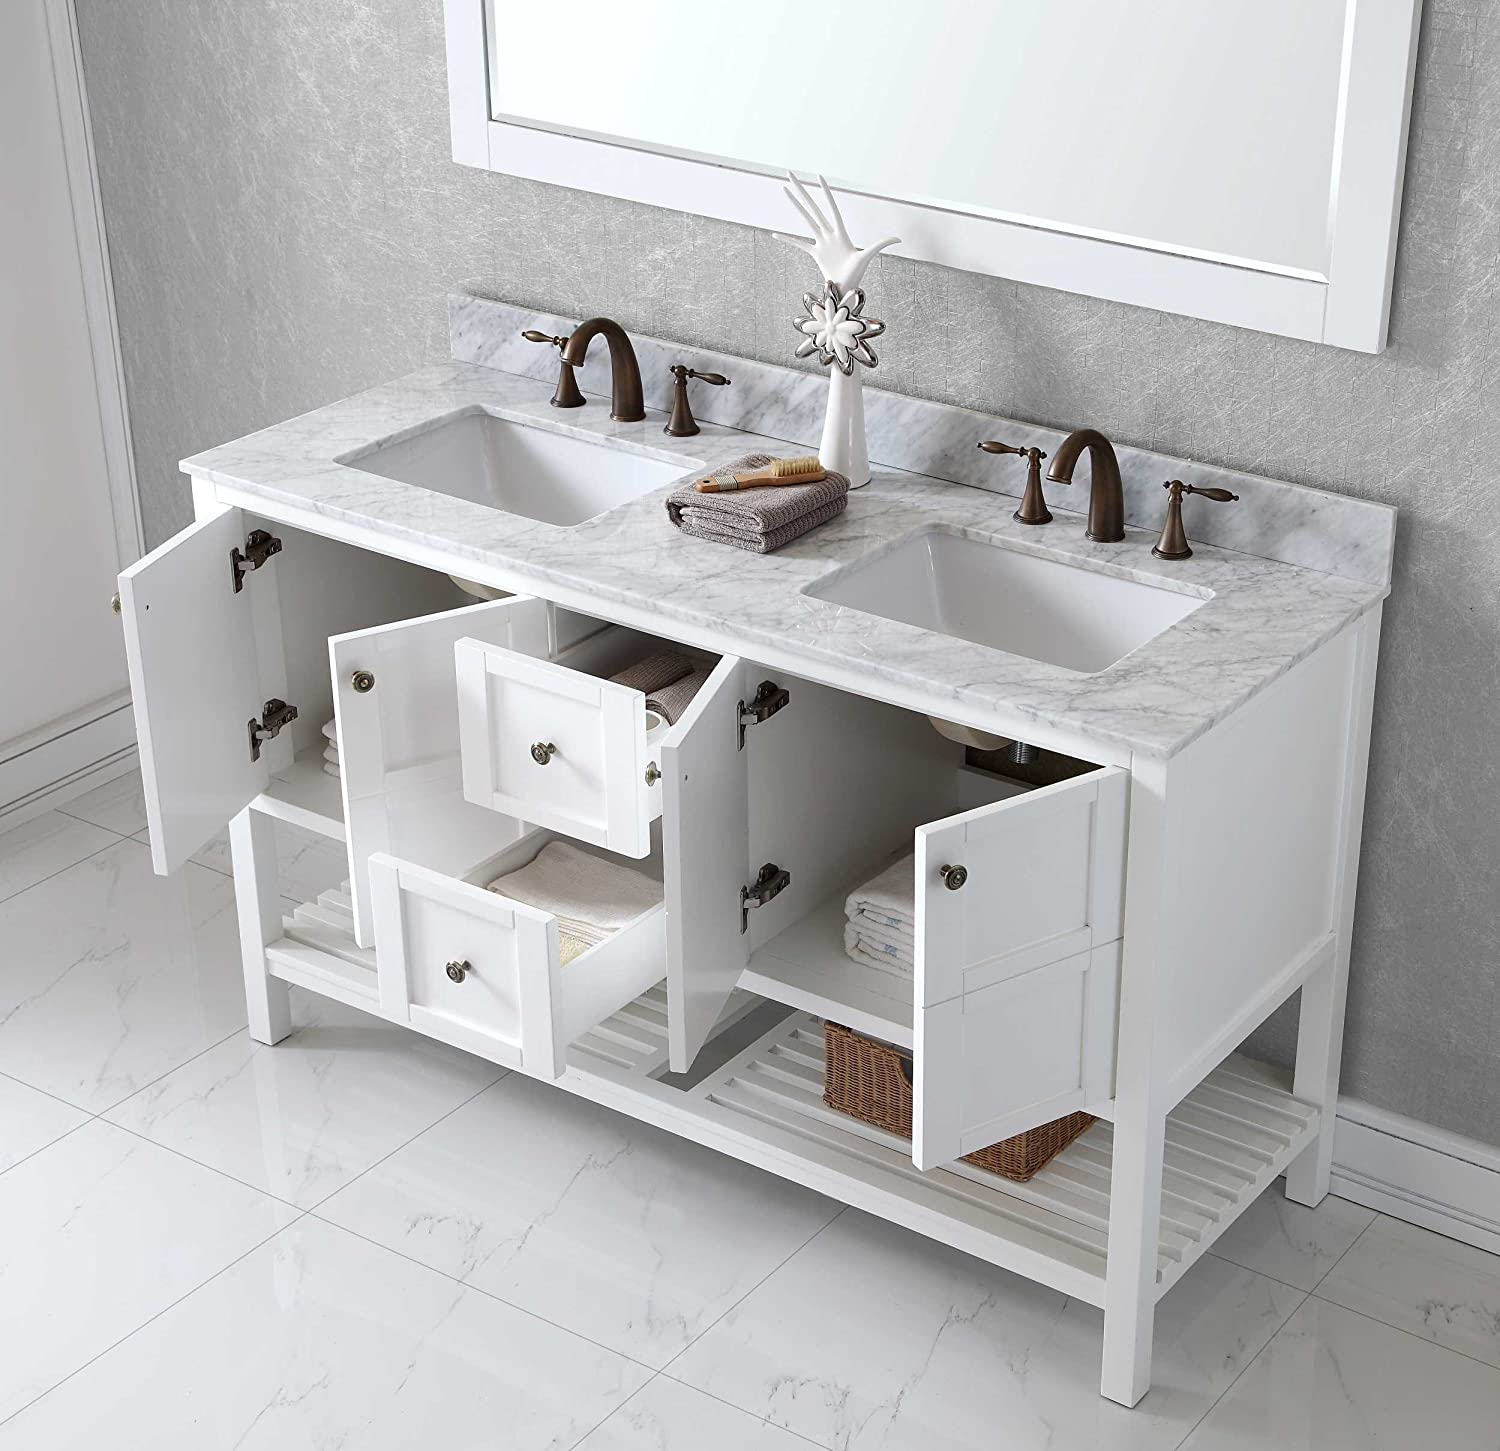 Virtu EDWMSQWH Winterfell Double Bathroom Vanity Cabinet - 54 vanity double sink